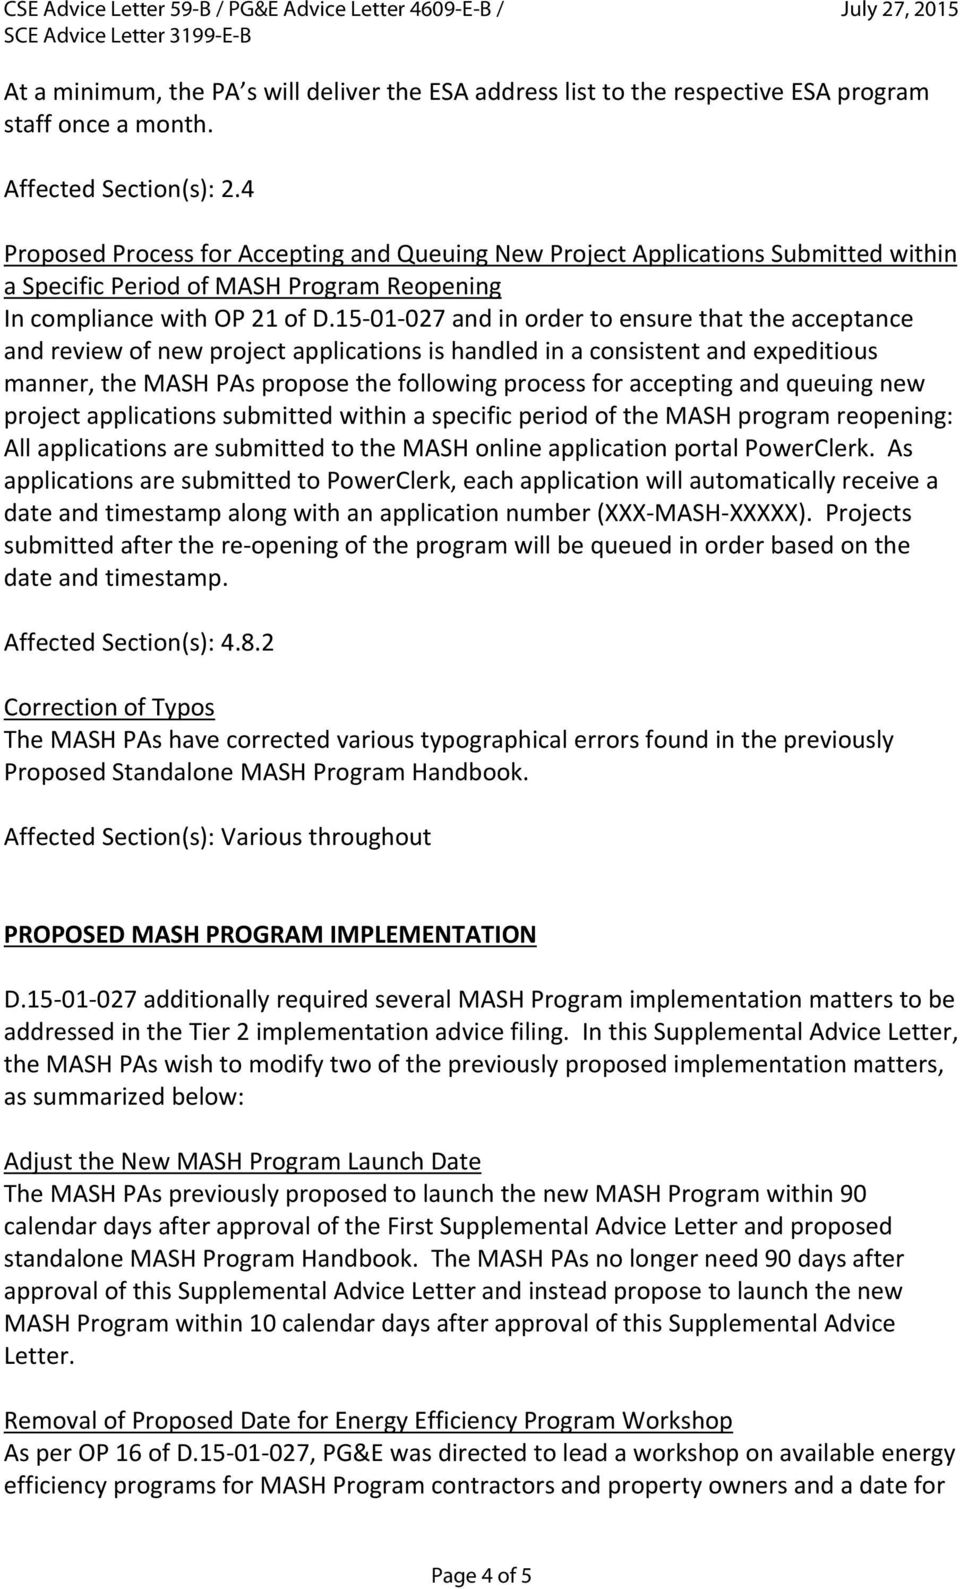 15 01 027 and in order to ensure that the acceptance and review of new project applications is handled in a consistent and expeditious manner, the MASH PAs propose the following process for accepting